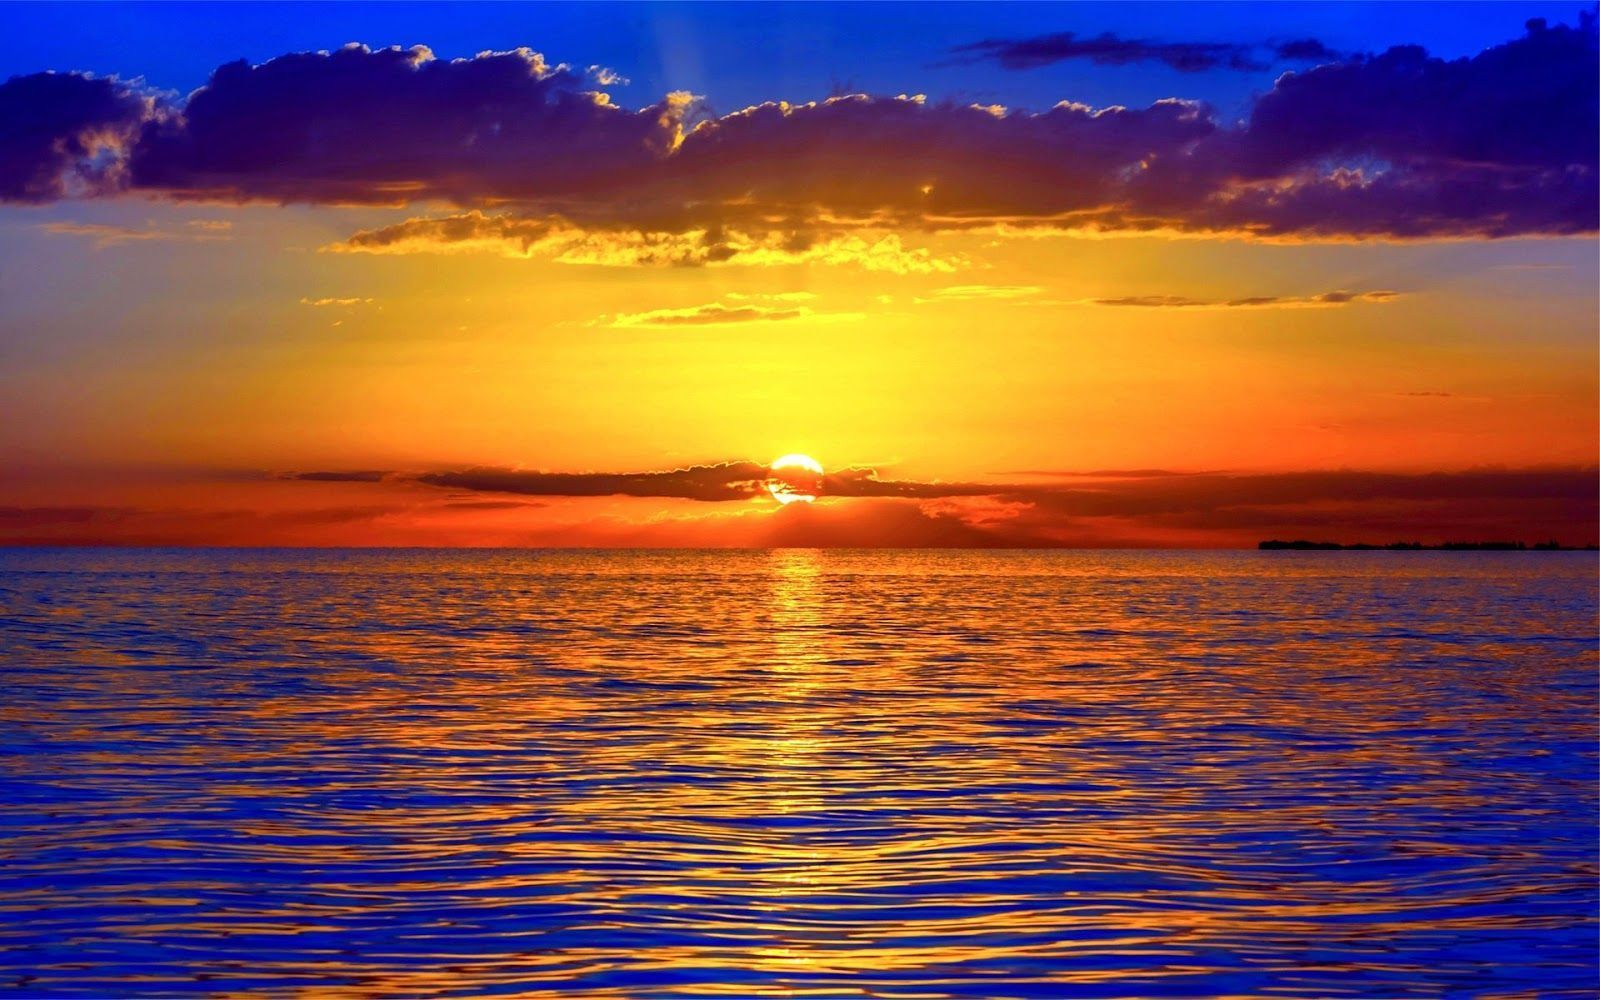 ocean sunset wallpaper Waves ocean